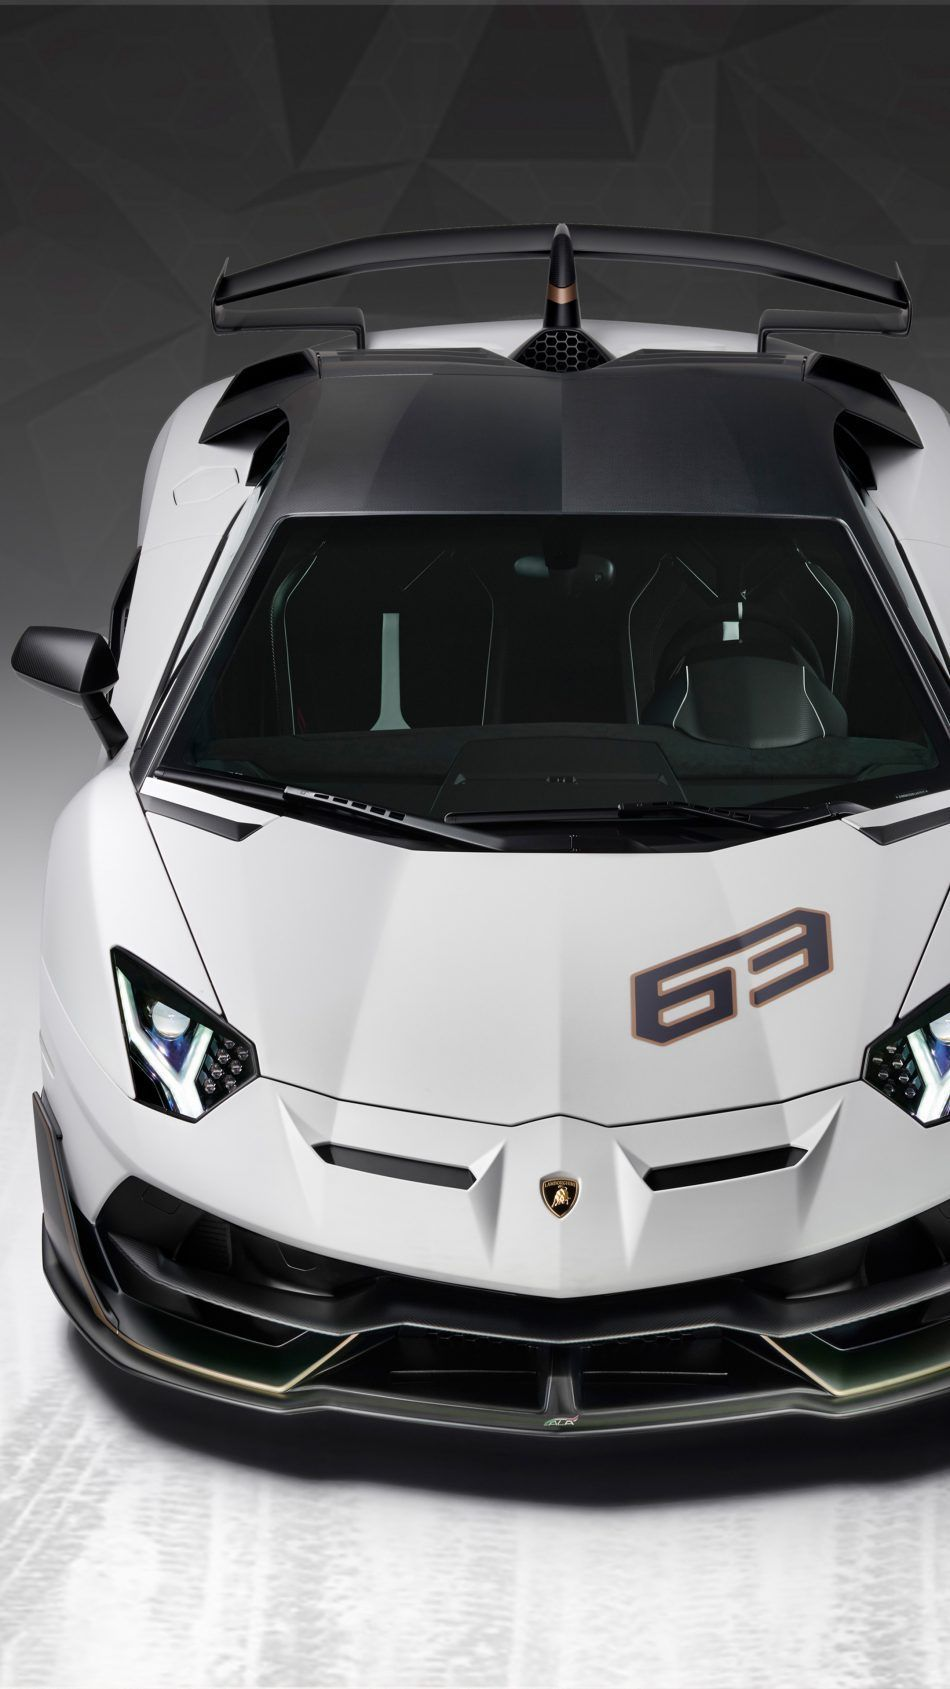 Sports Cars That Start With M [Luxury and Expensive Cars